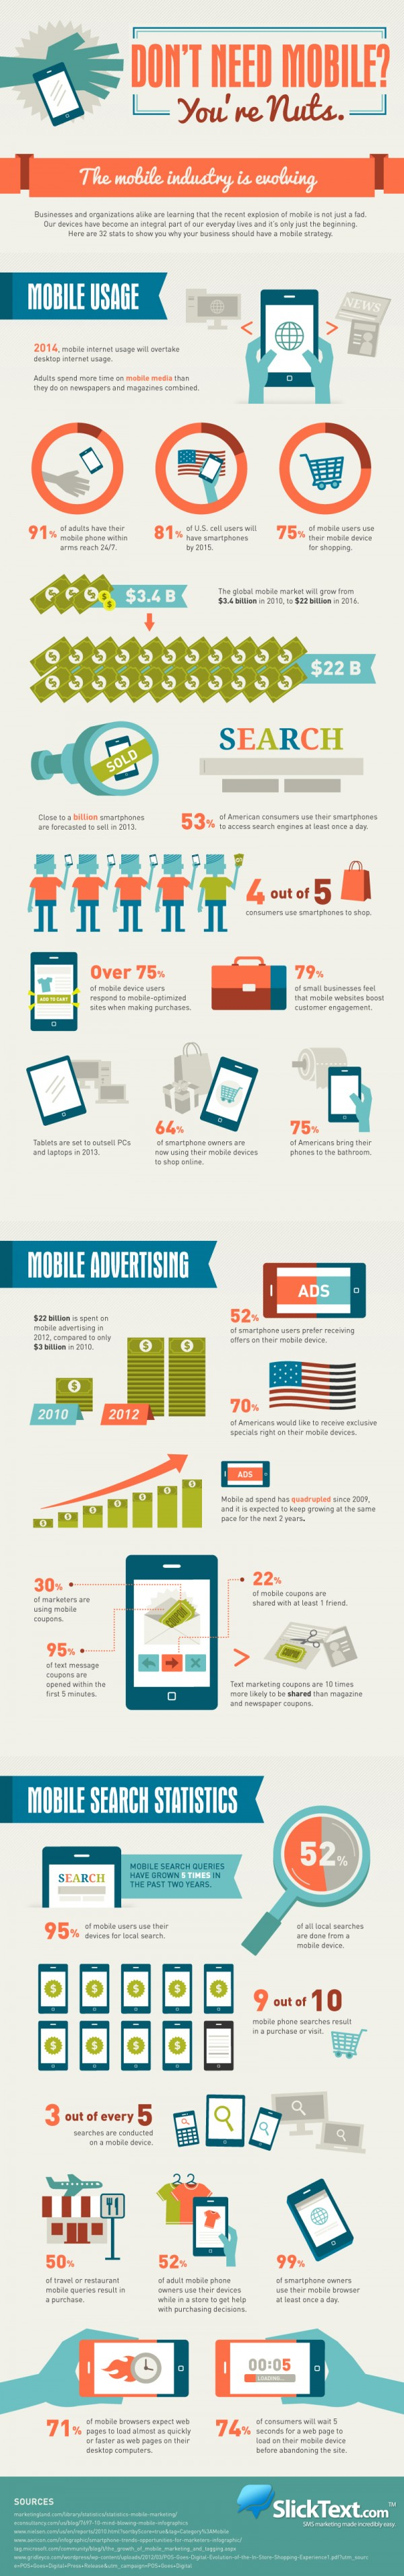 Mobile Marketing / Text Marketing Infographic